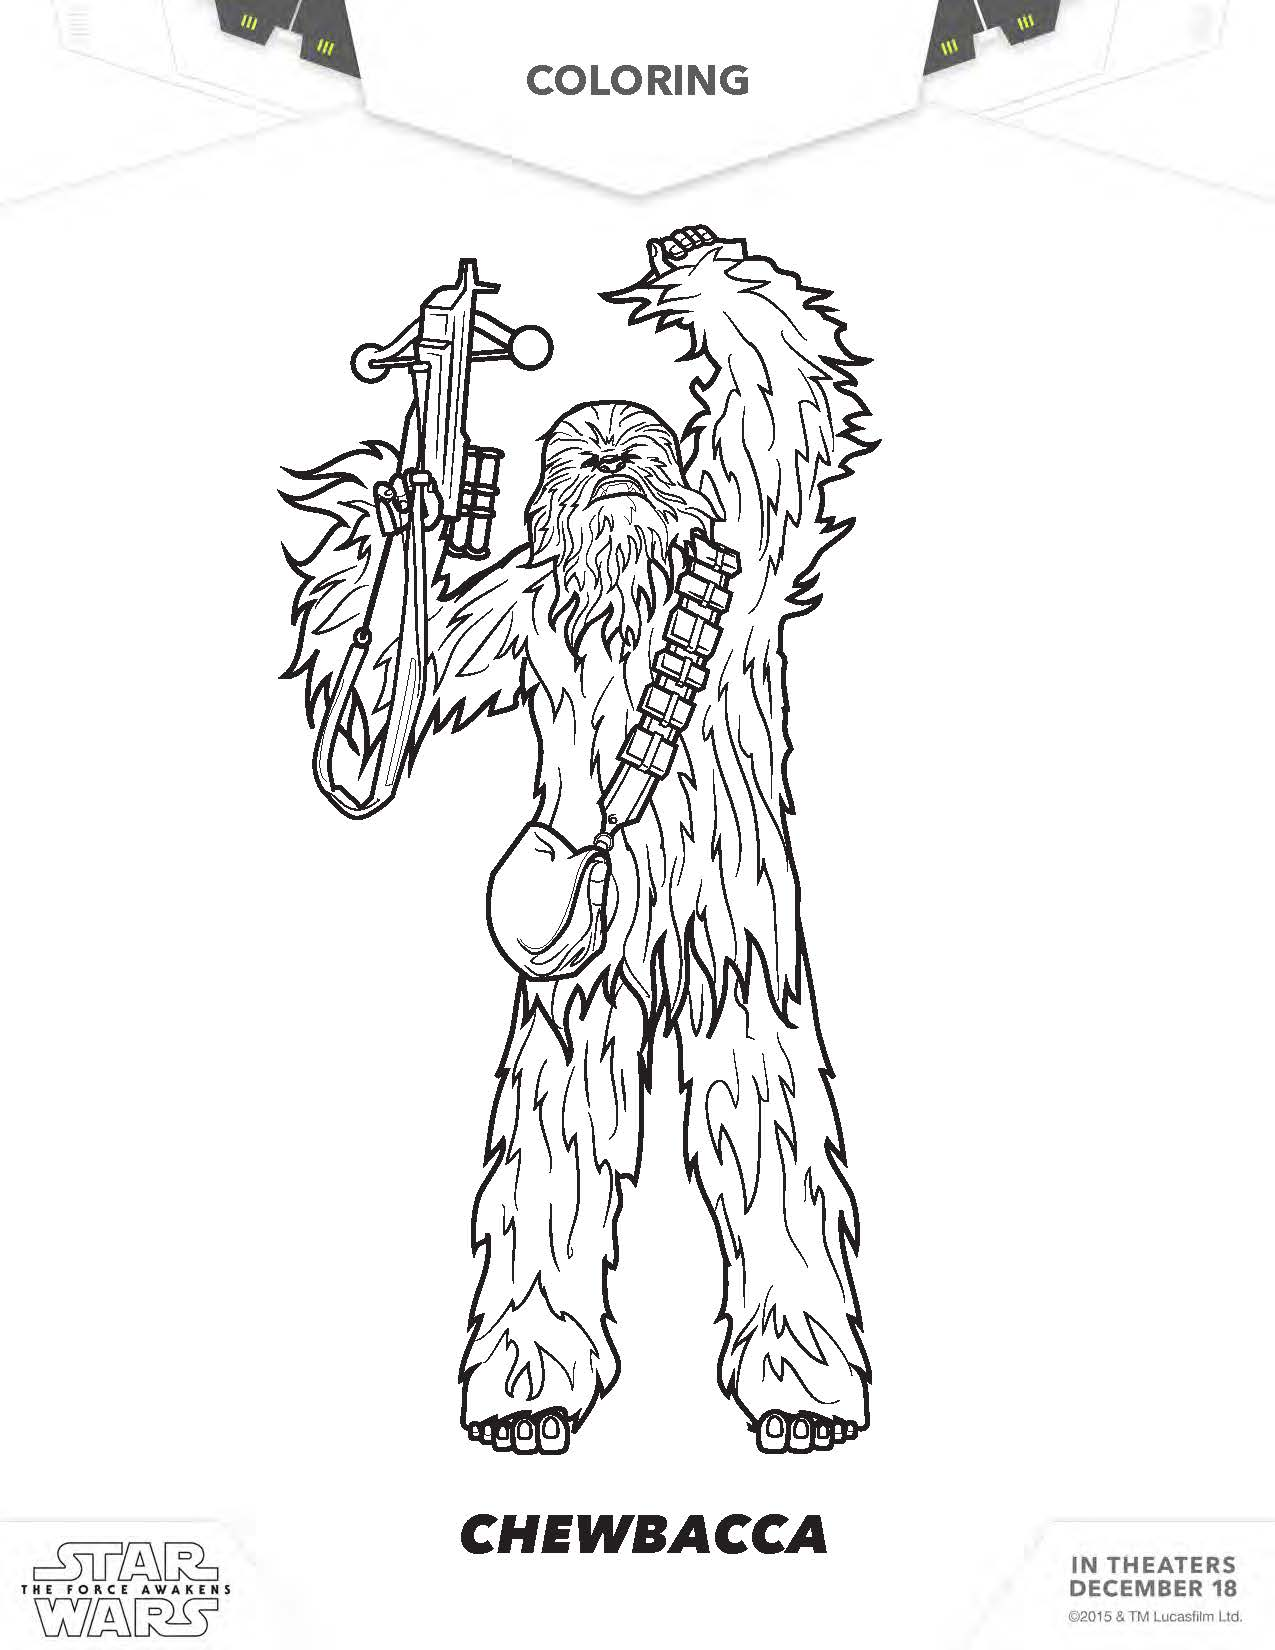 Star Wars Coloring Pages To Print Chewbacca Costume Diy The Art